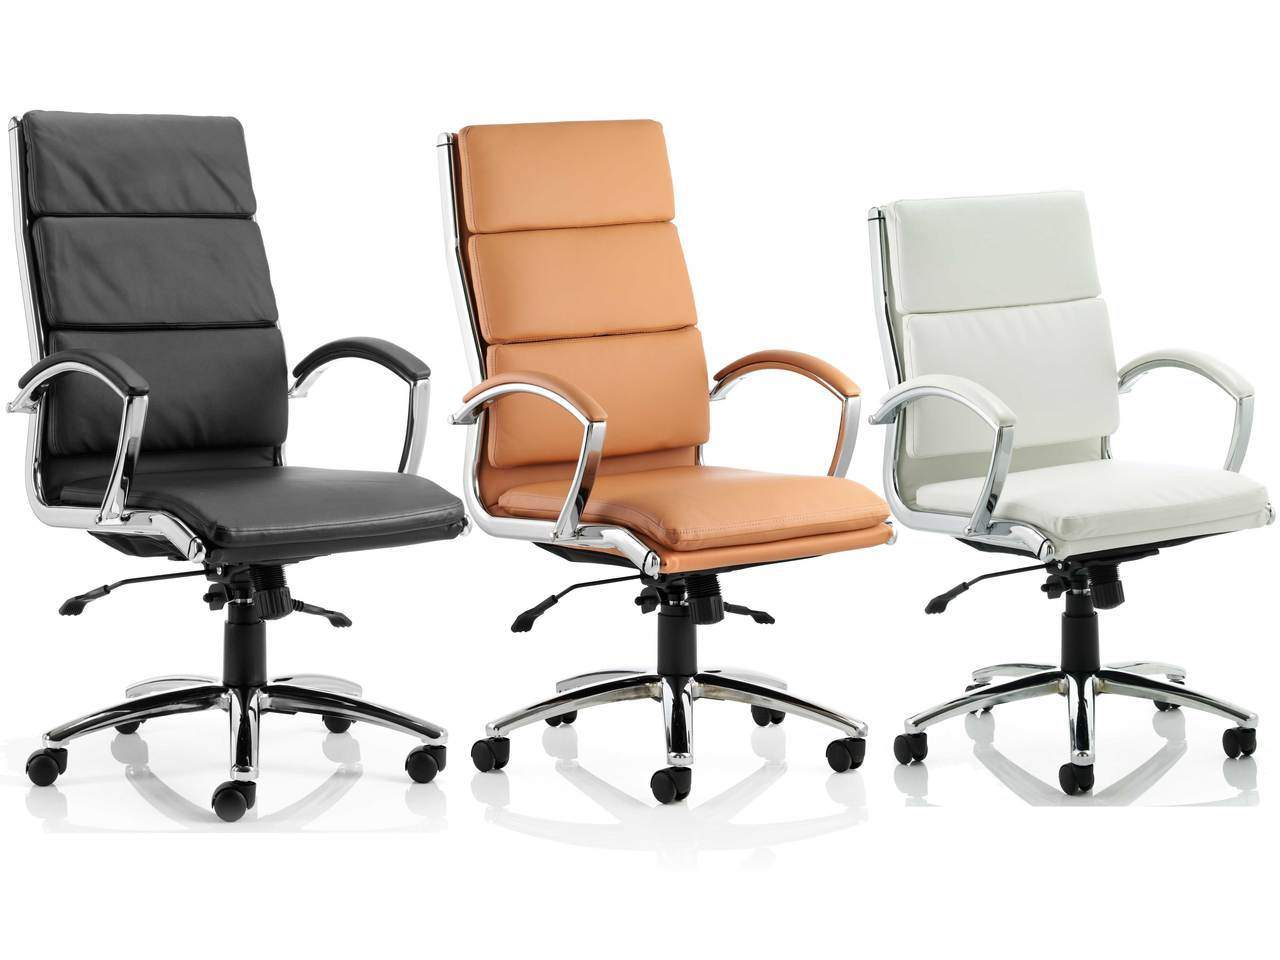 Classic Medium and High Back Leather Executive Office Chair in Tan, Black or White